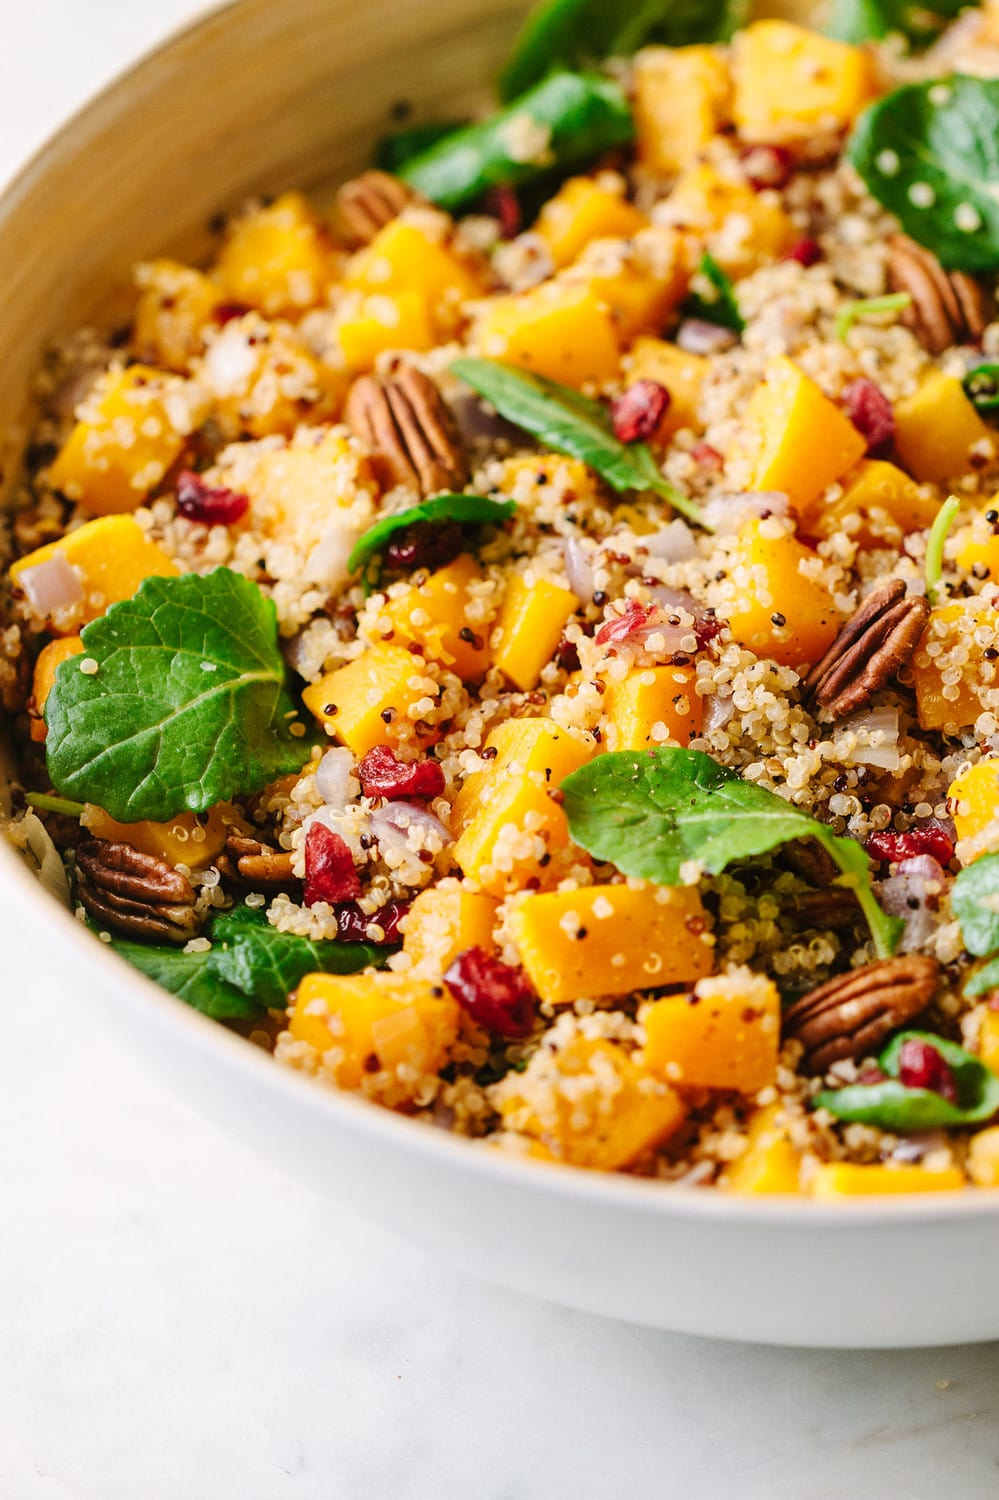 a side view of a large white serving bowl with autumn butternut squash and quinoa salad